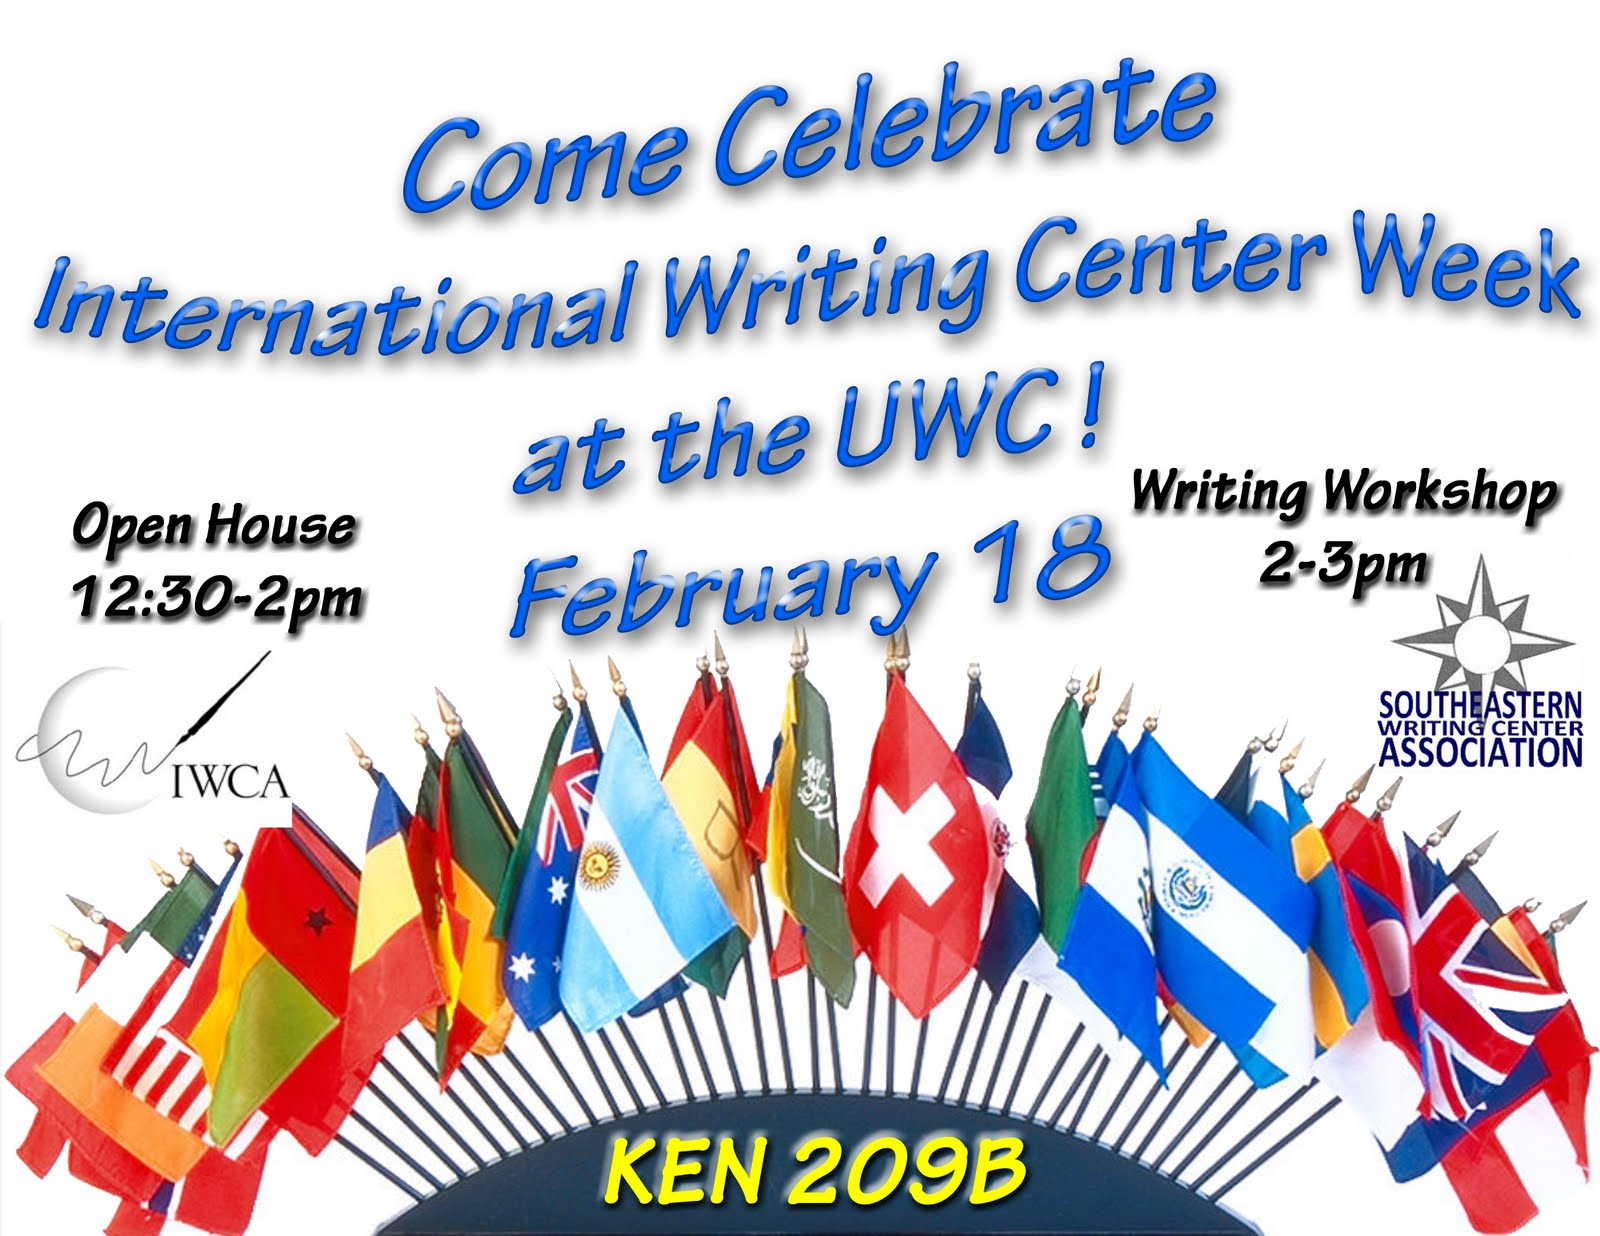 uwc essay help is custom writing essay really safe the university writing center is an interdisciplinary student resource that offers individualized help writing for any lcu undergraduate or